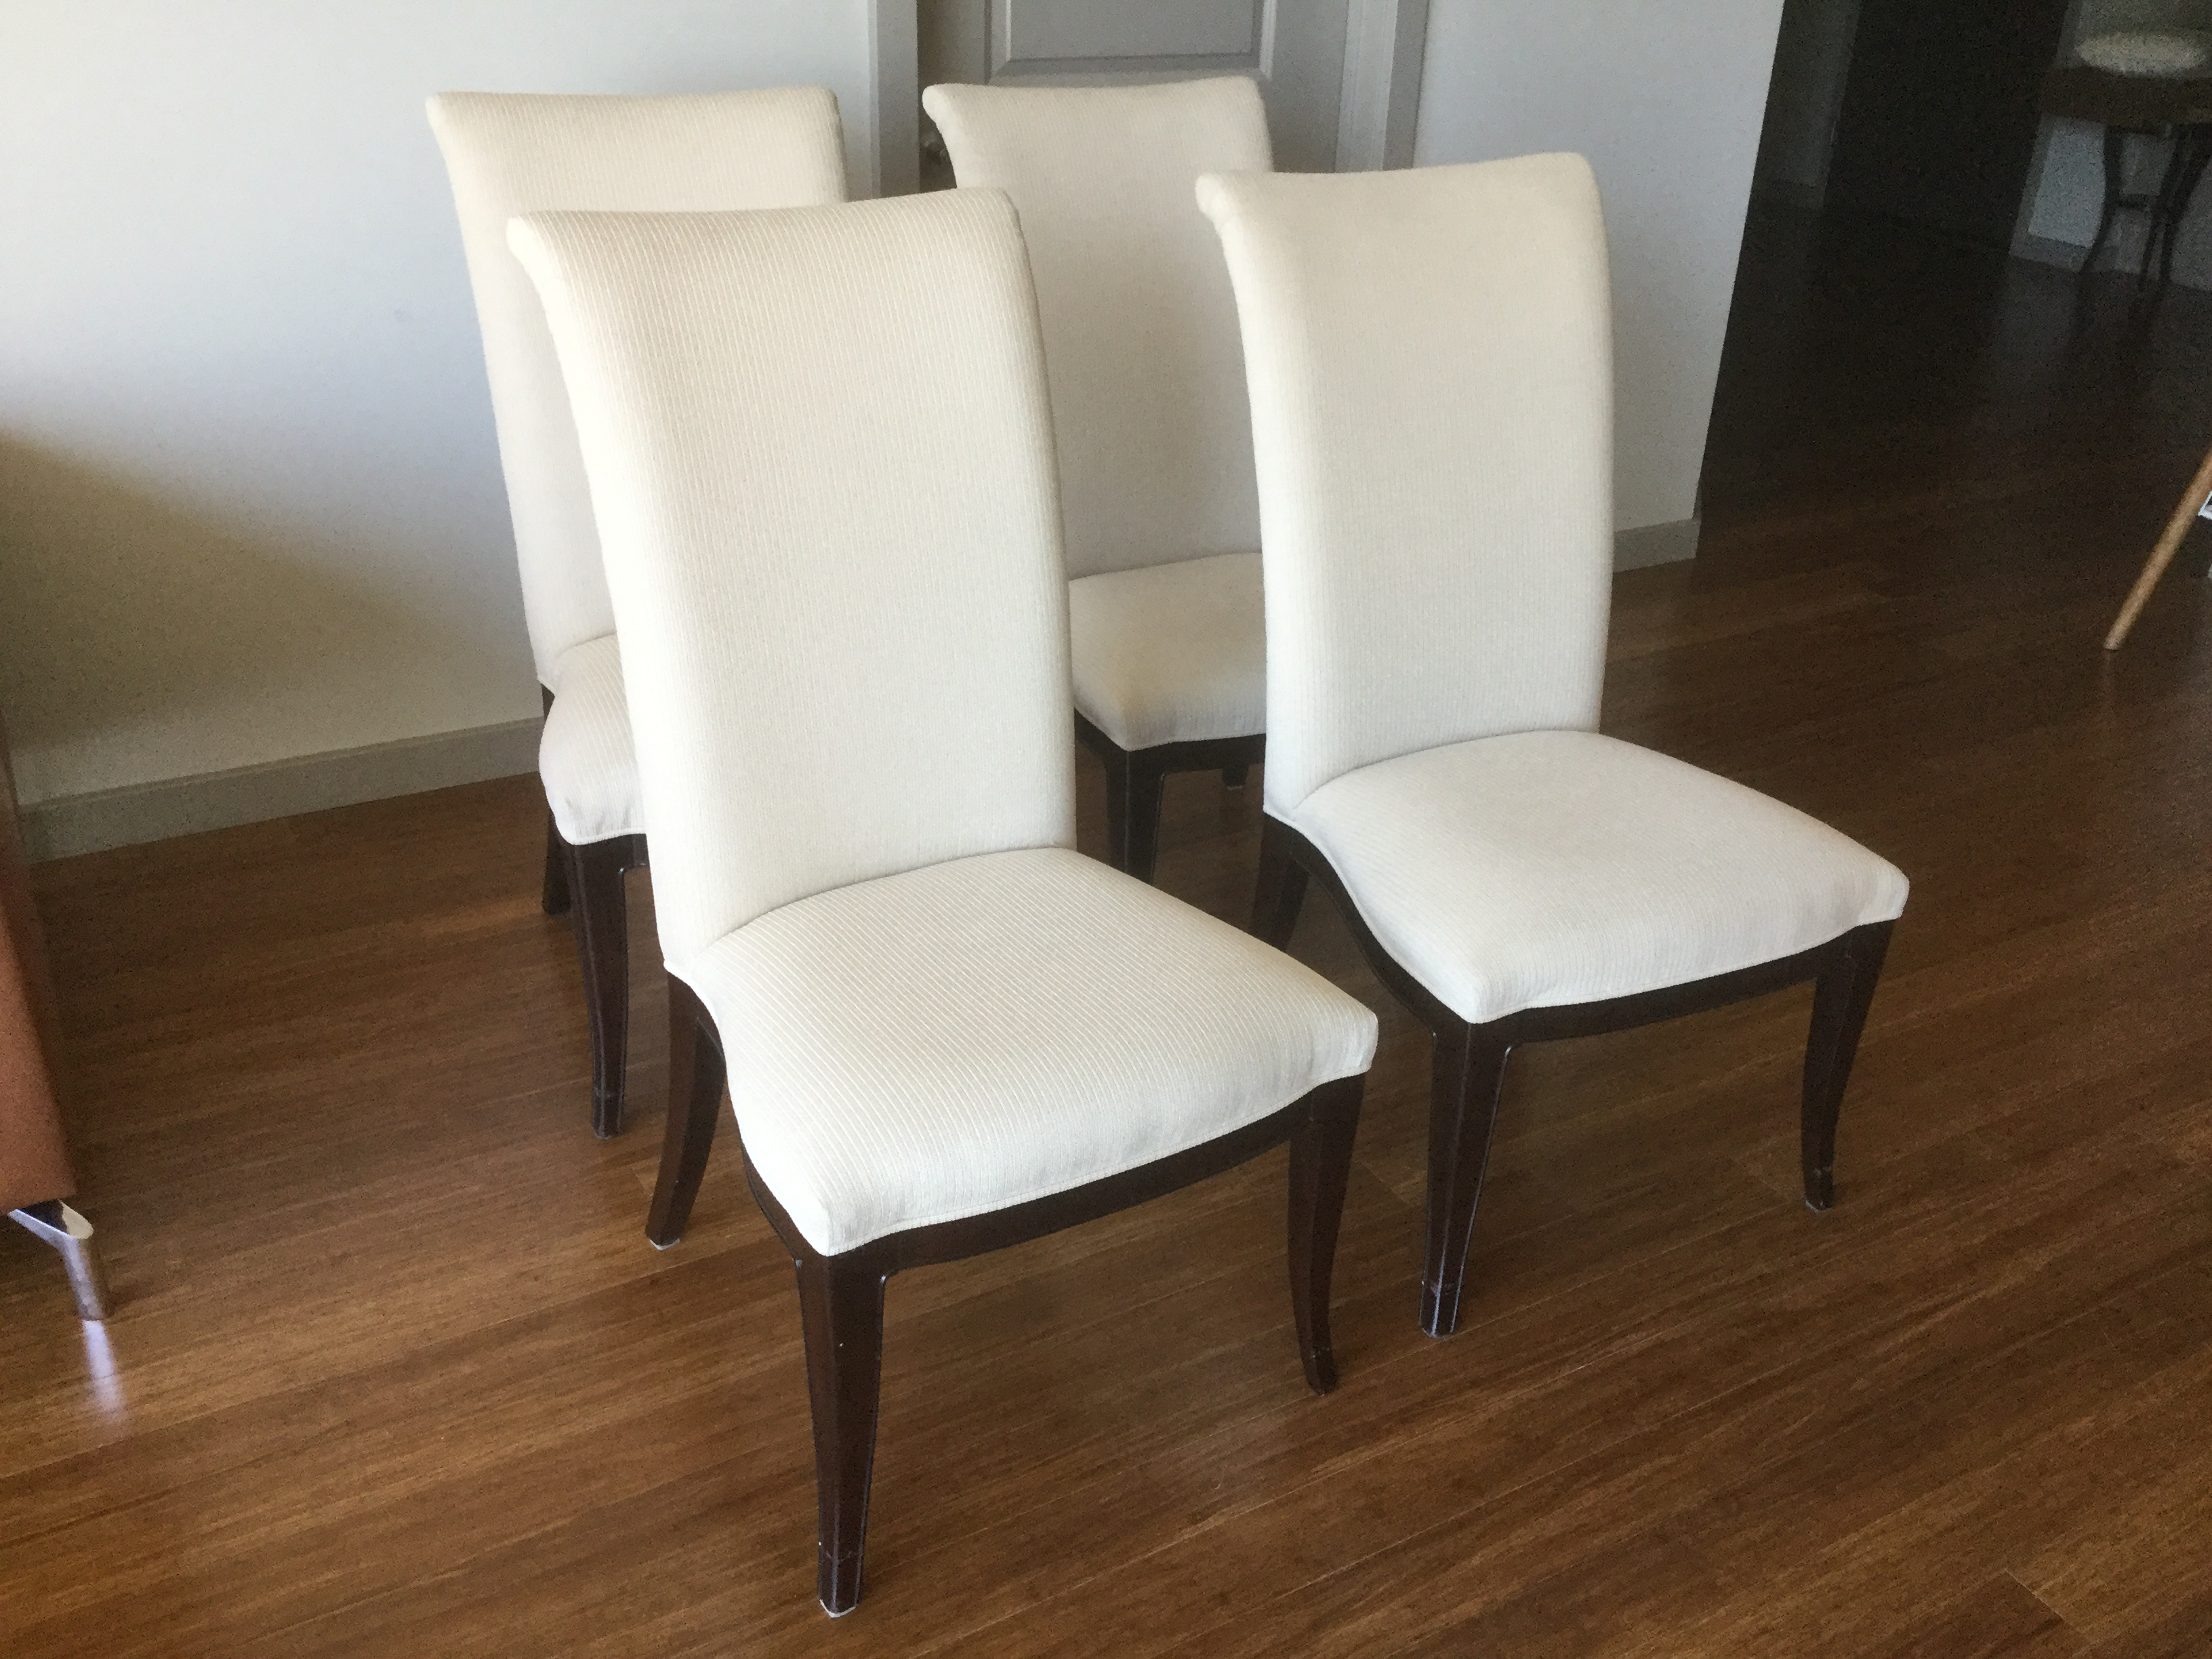 Charmant Thomasville Nocturne Upholstered Dining Chairs S/4   Image 3 Of 11